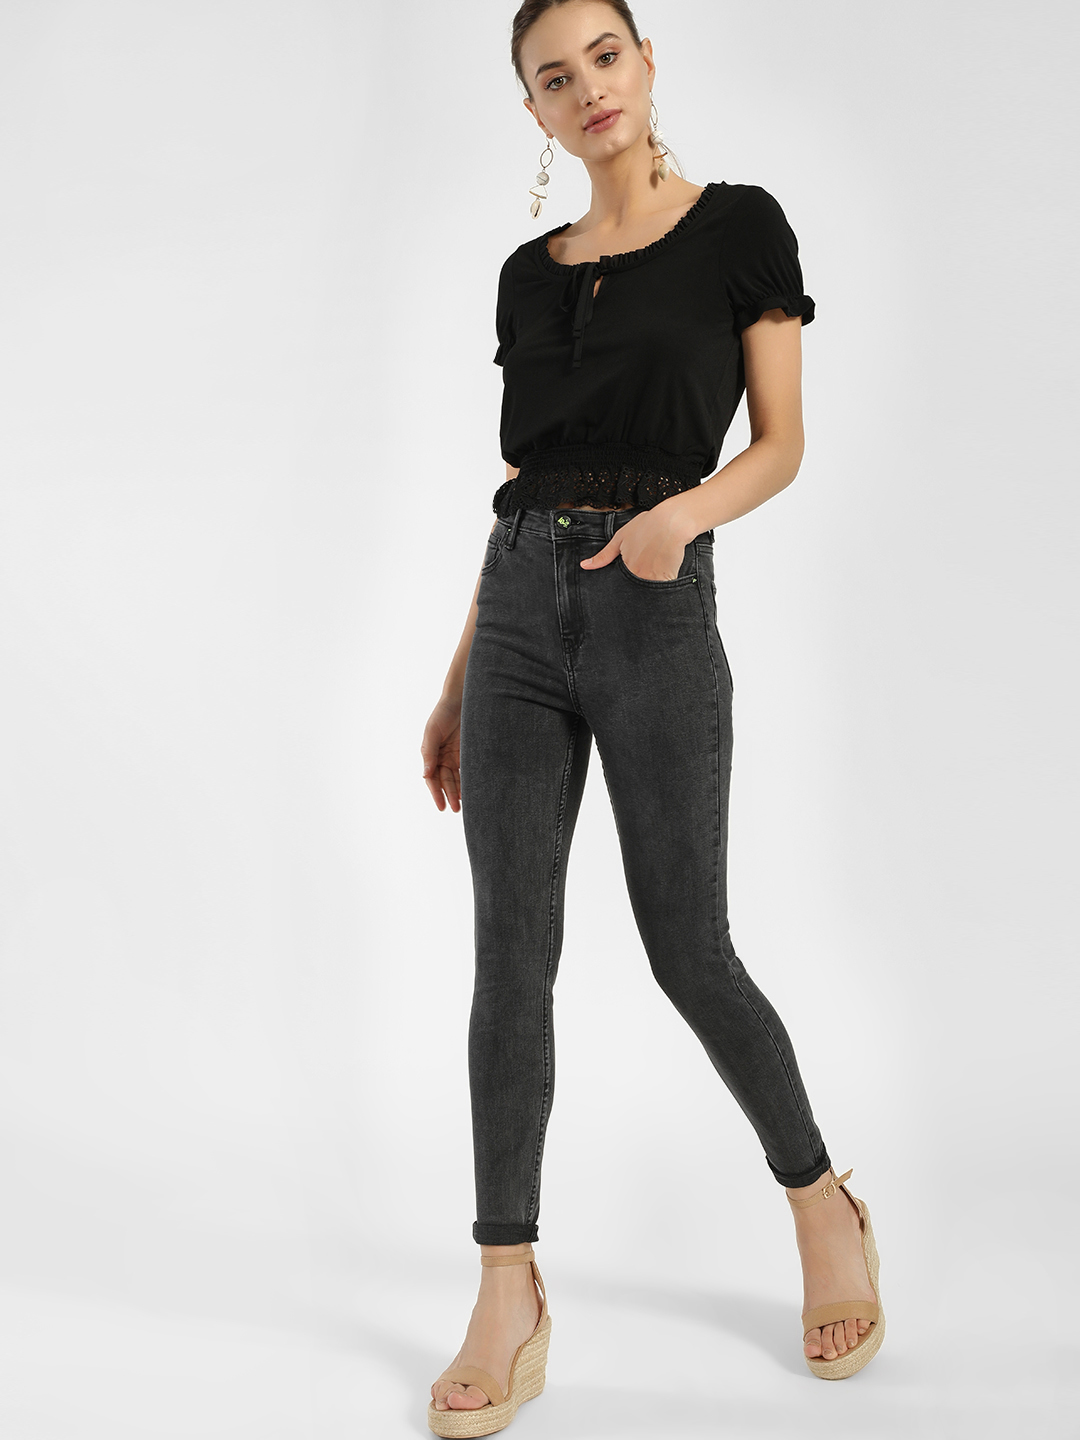 LOVEGEN Grey Light Wash High Waist Skinny Jeans 1